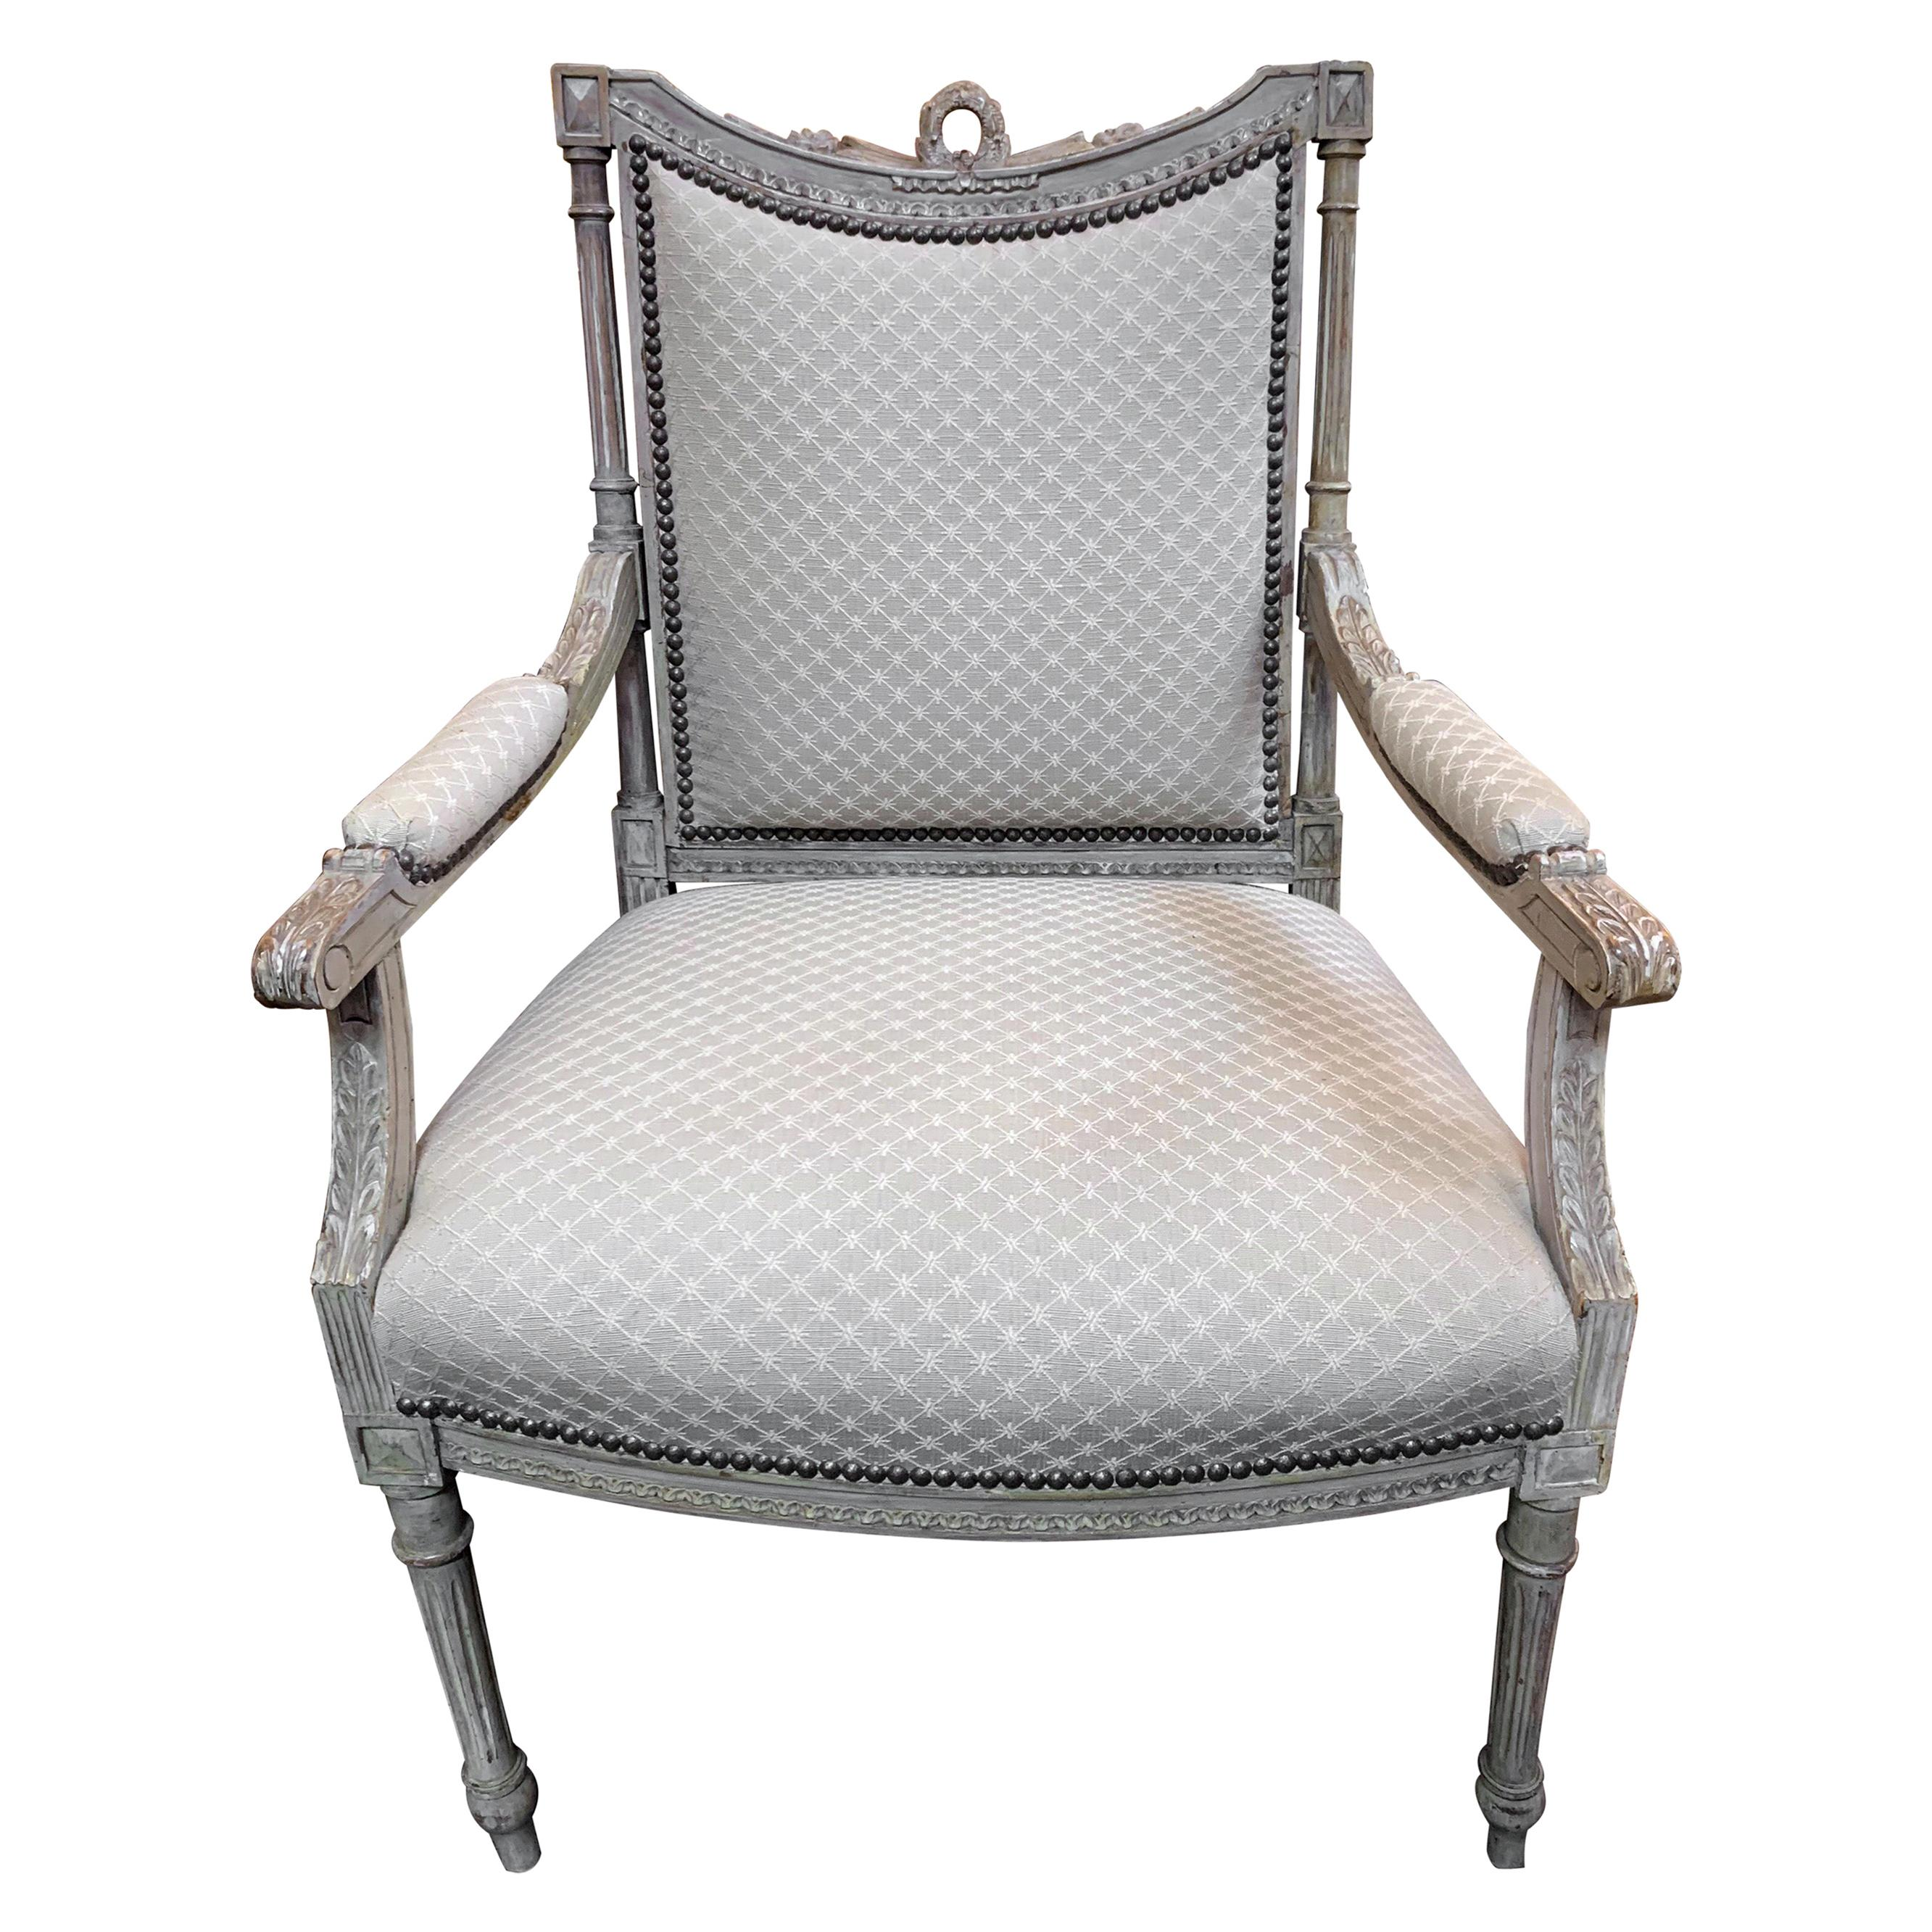 19th Century French Louis XVI Style Carved and Painted Armchair